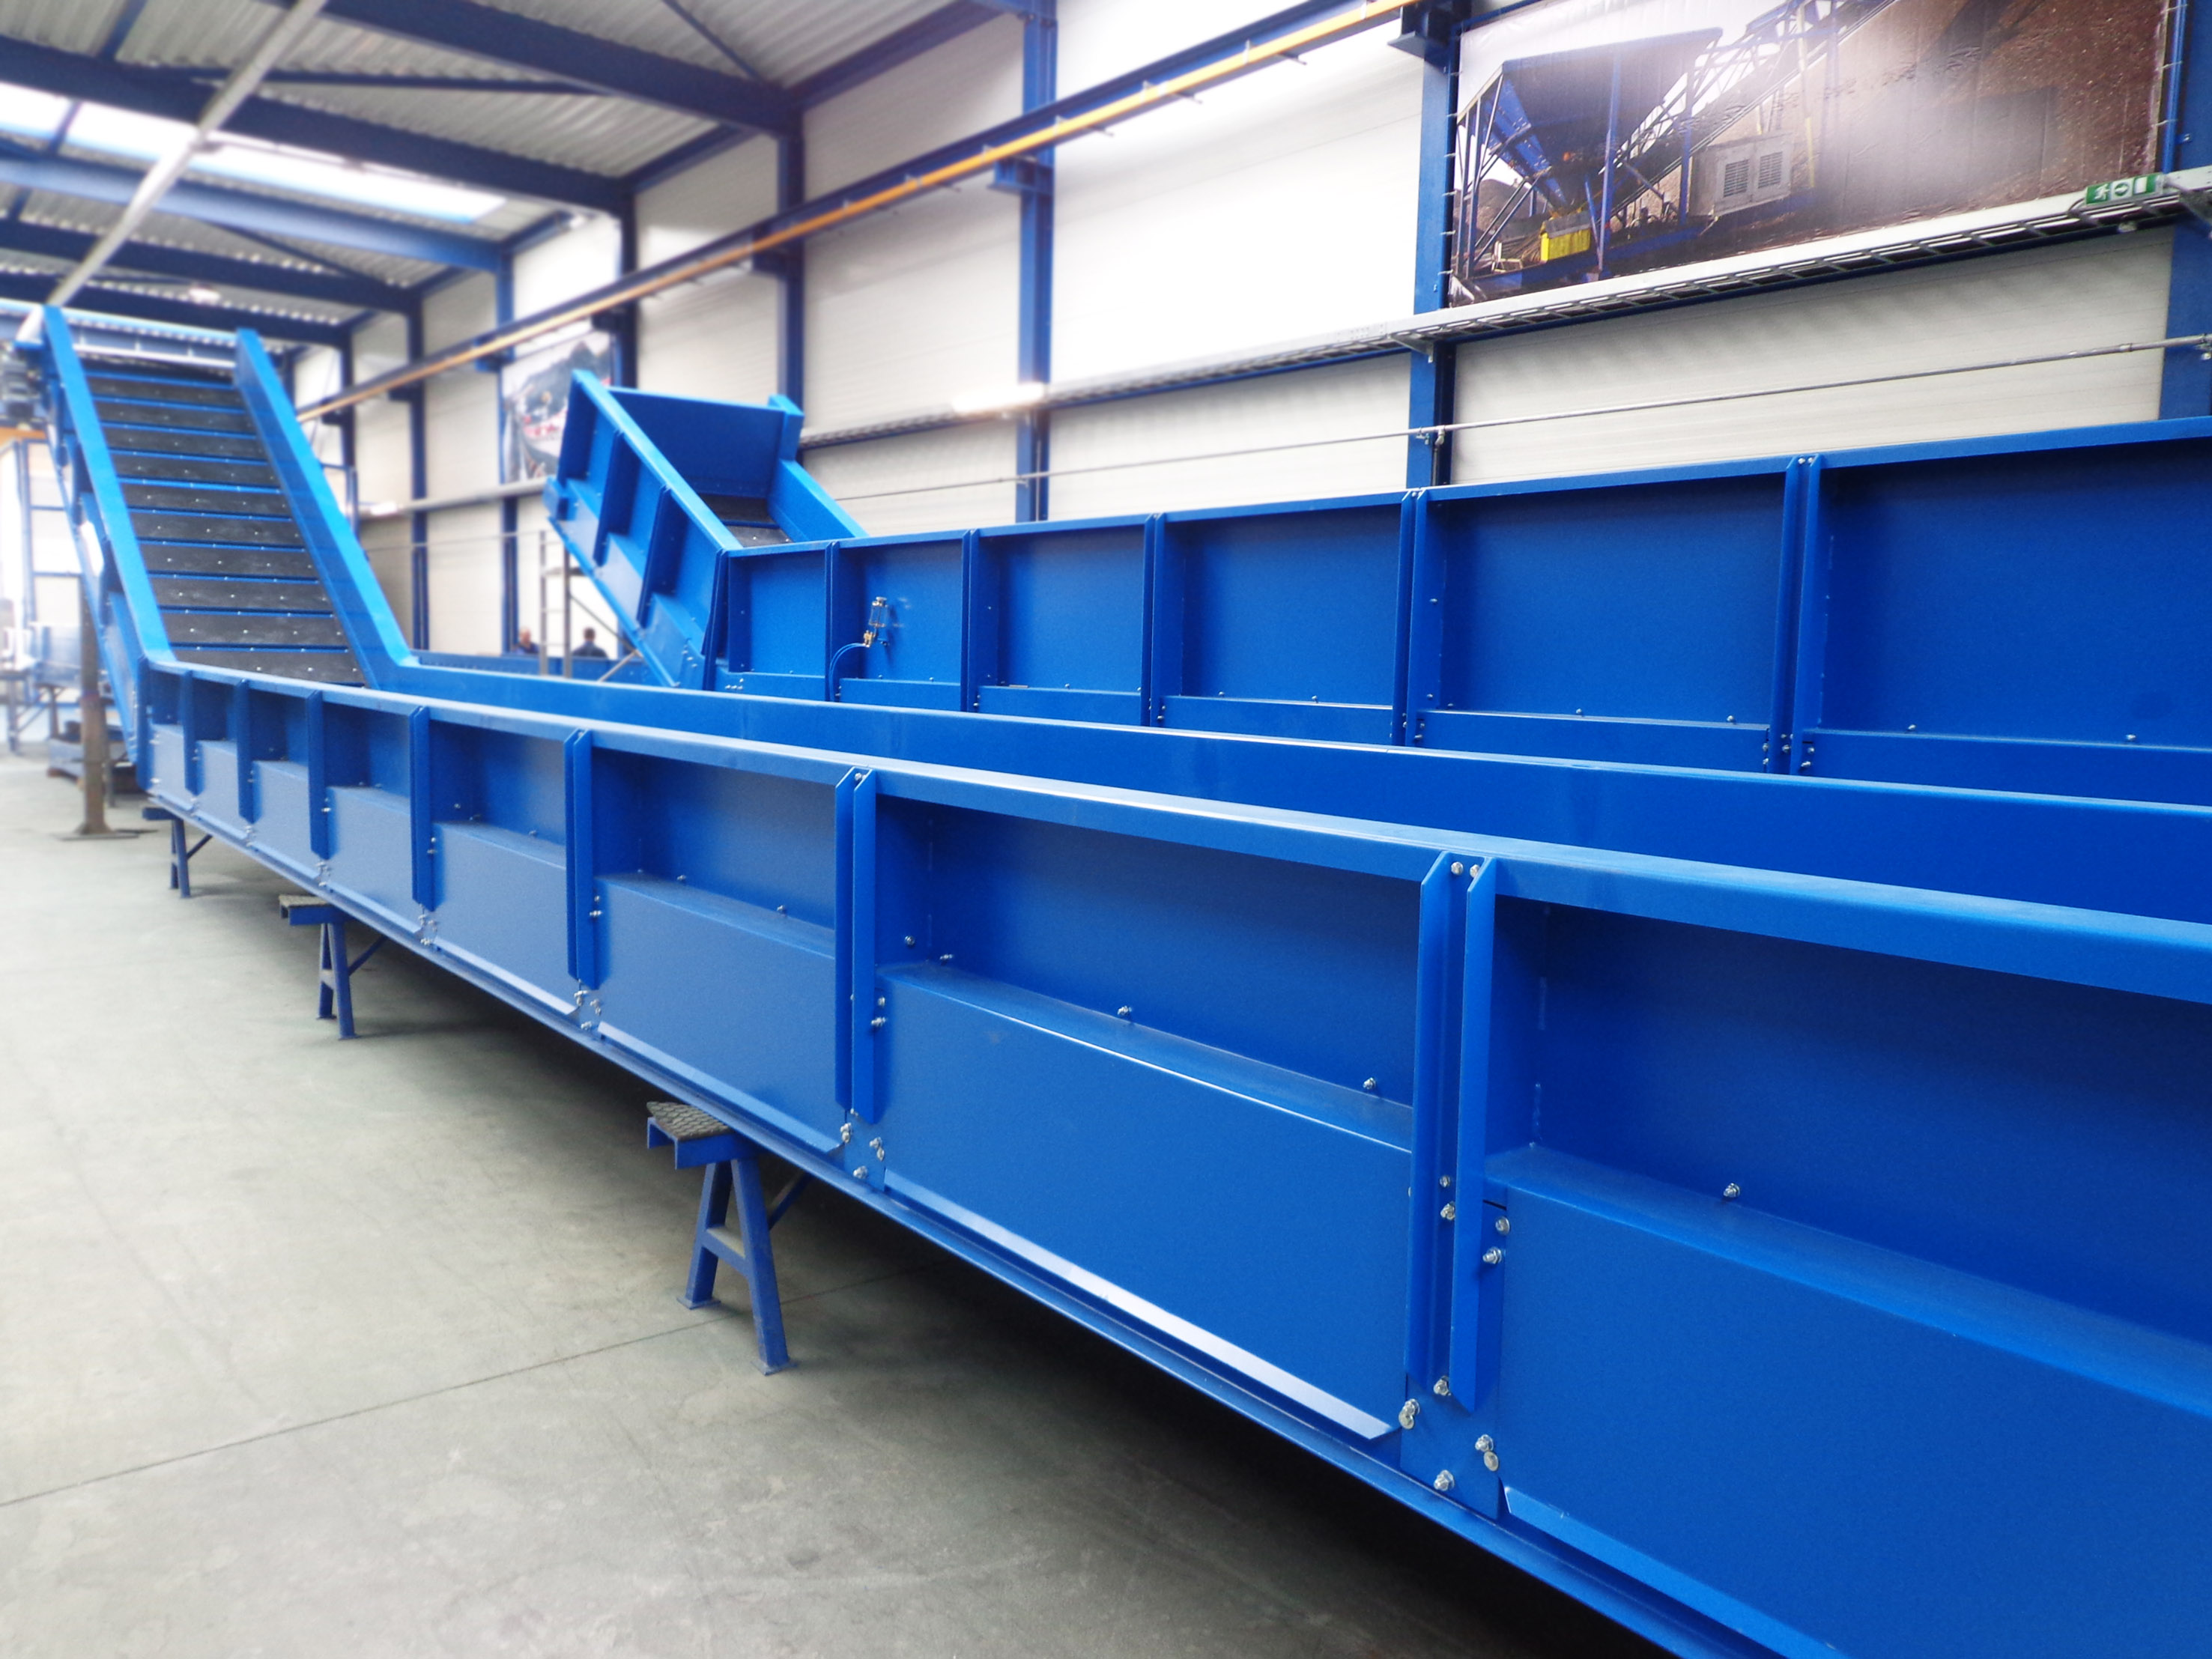 Chain conveyor suitable for moving heavy loads - Bezner